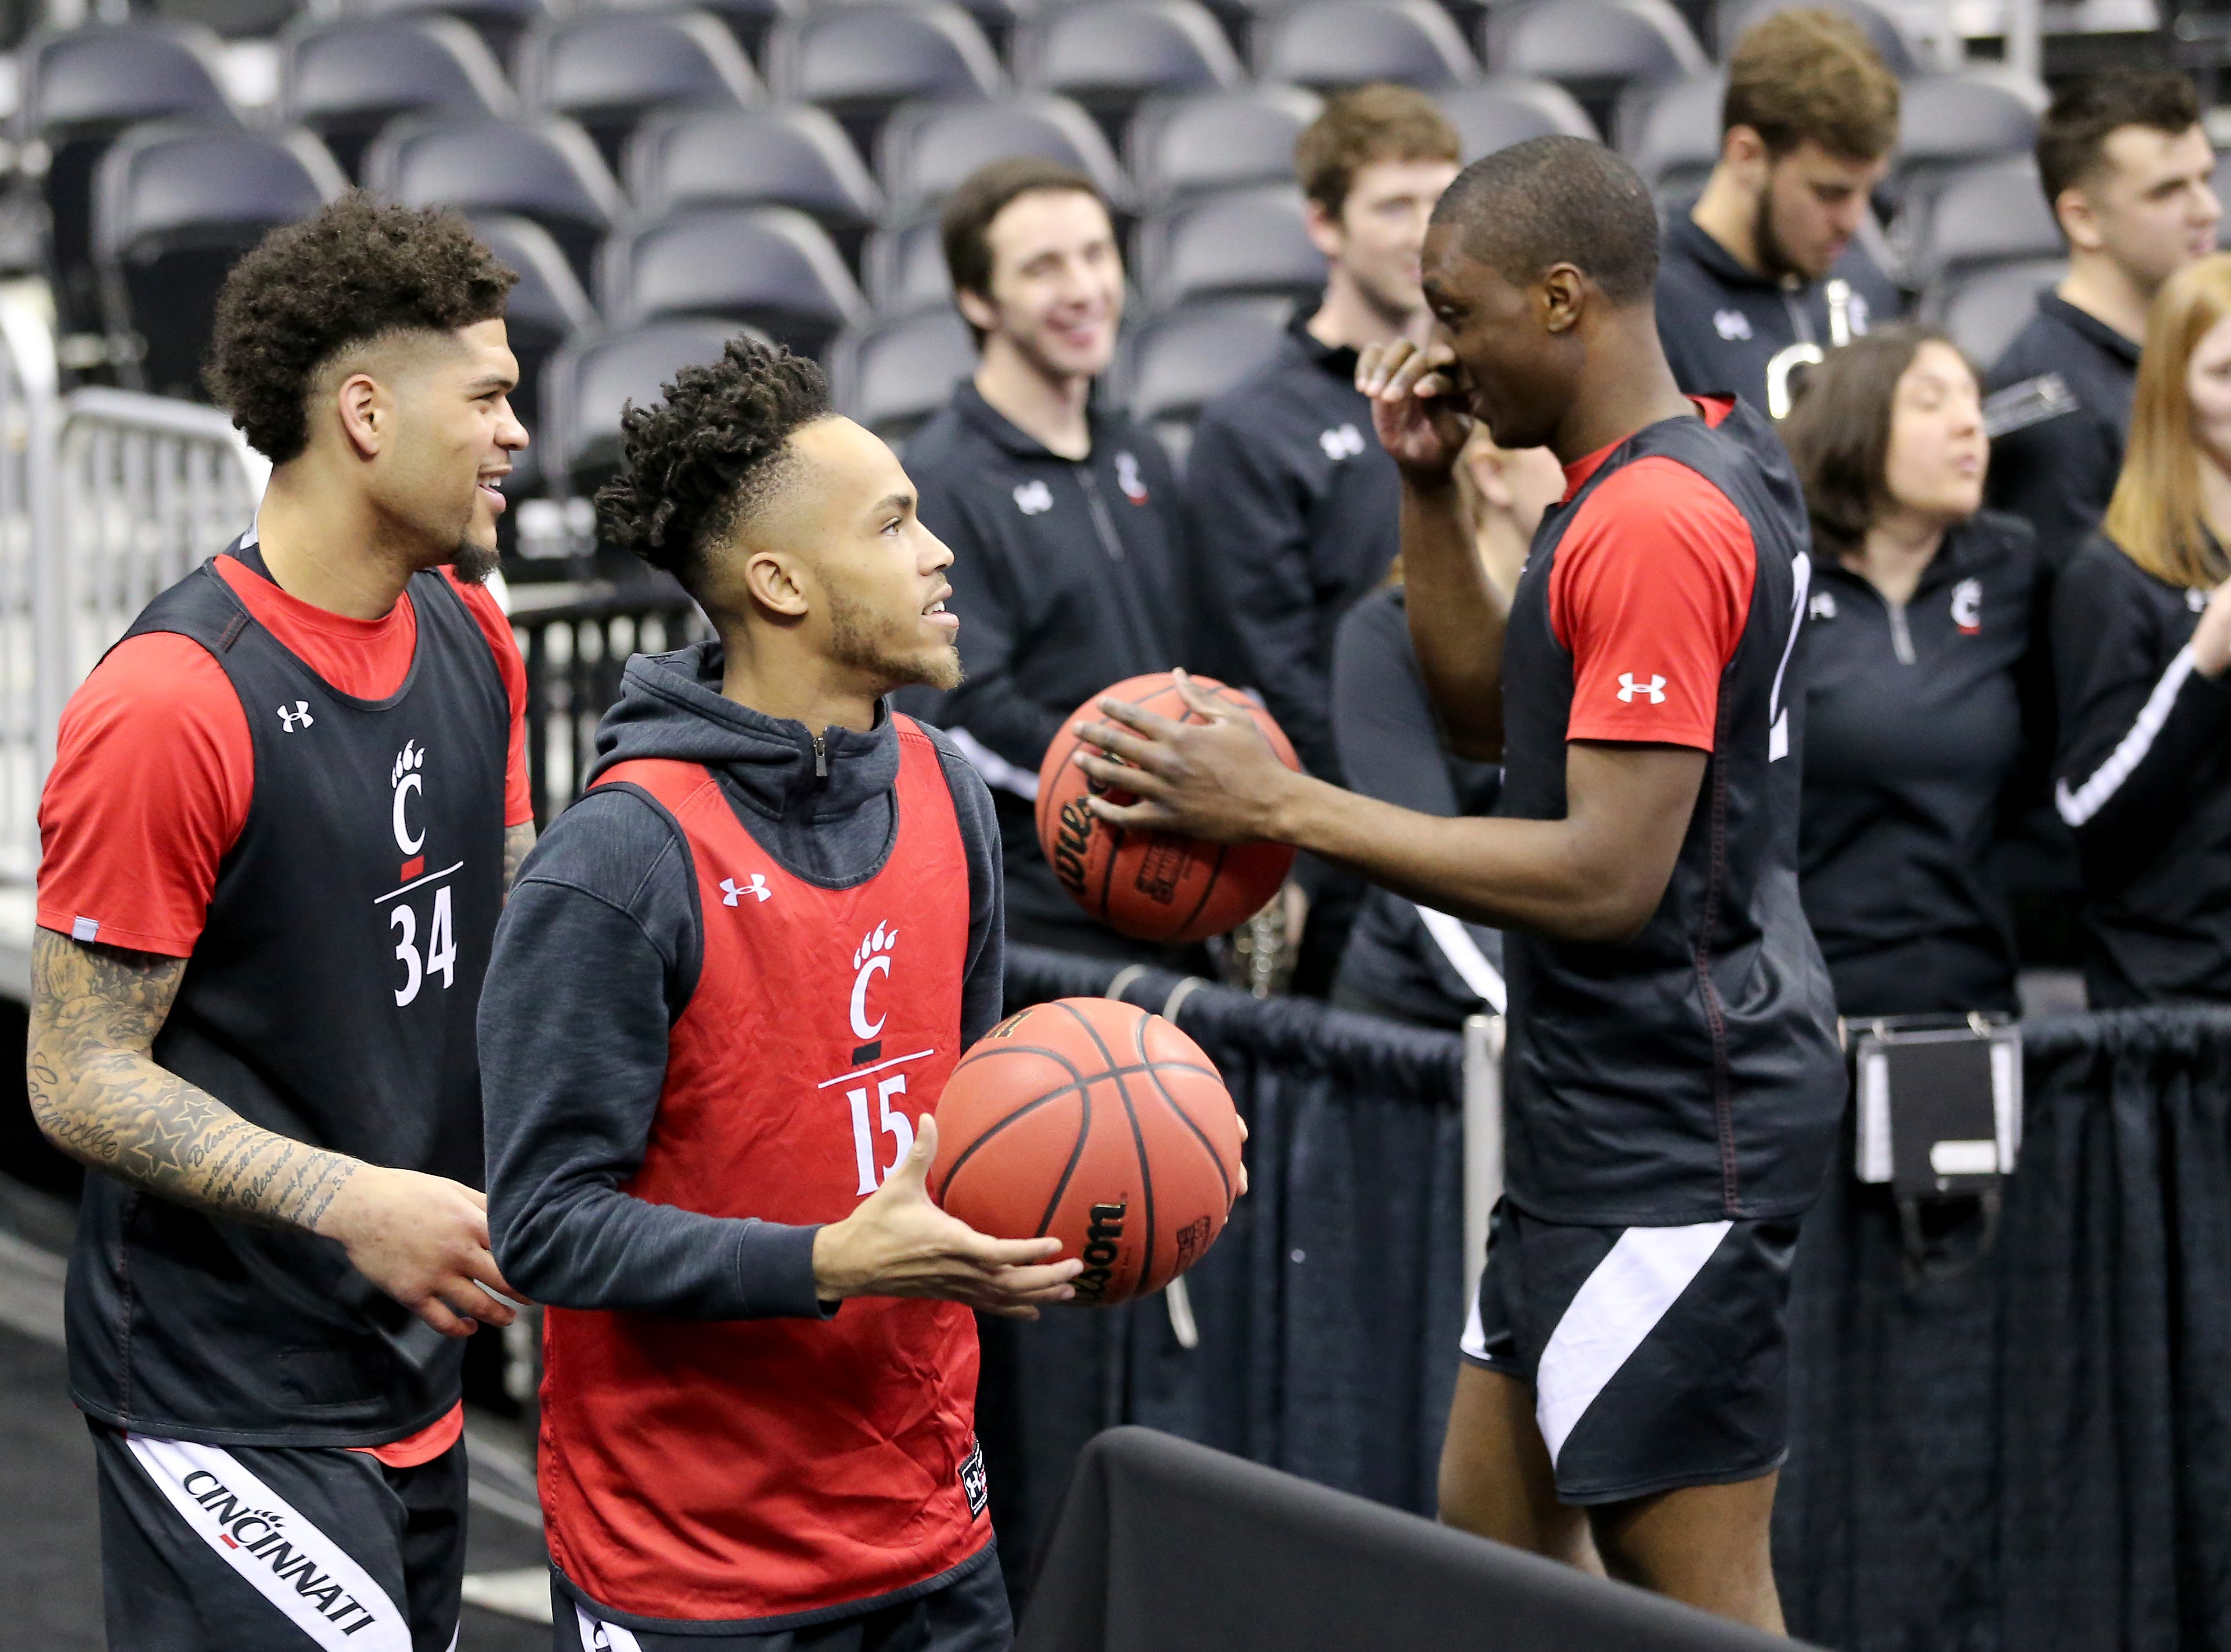 Cincinnati Bearcats guard Jarron Cumberland (34), guard Cane Broome (15) and guard Keith Williams (2) take turns taking shots from the corner during open practice, Thursday, March 21, 2019, at Nationwide Arena in Columbus, Ohio.